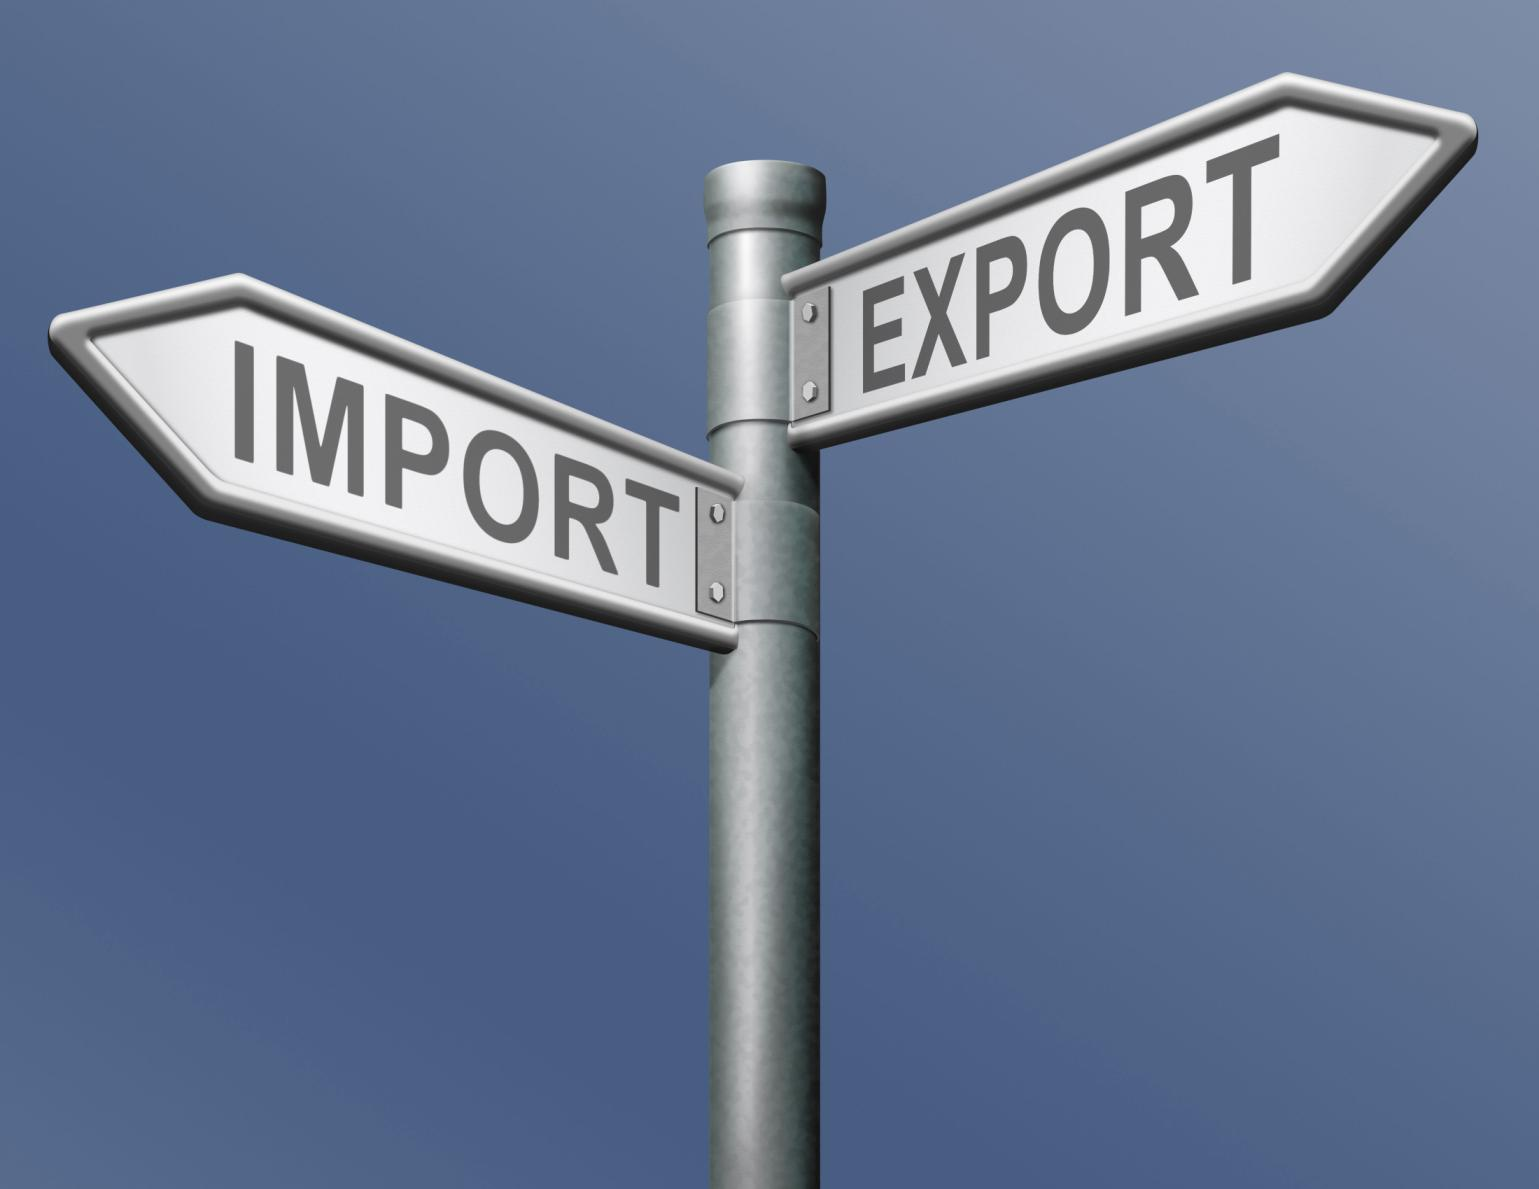 2 As the globe is becoming smaller and international trade is becoming easily accessible, the issue of moving